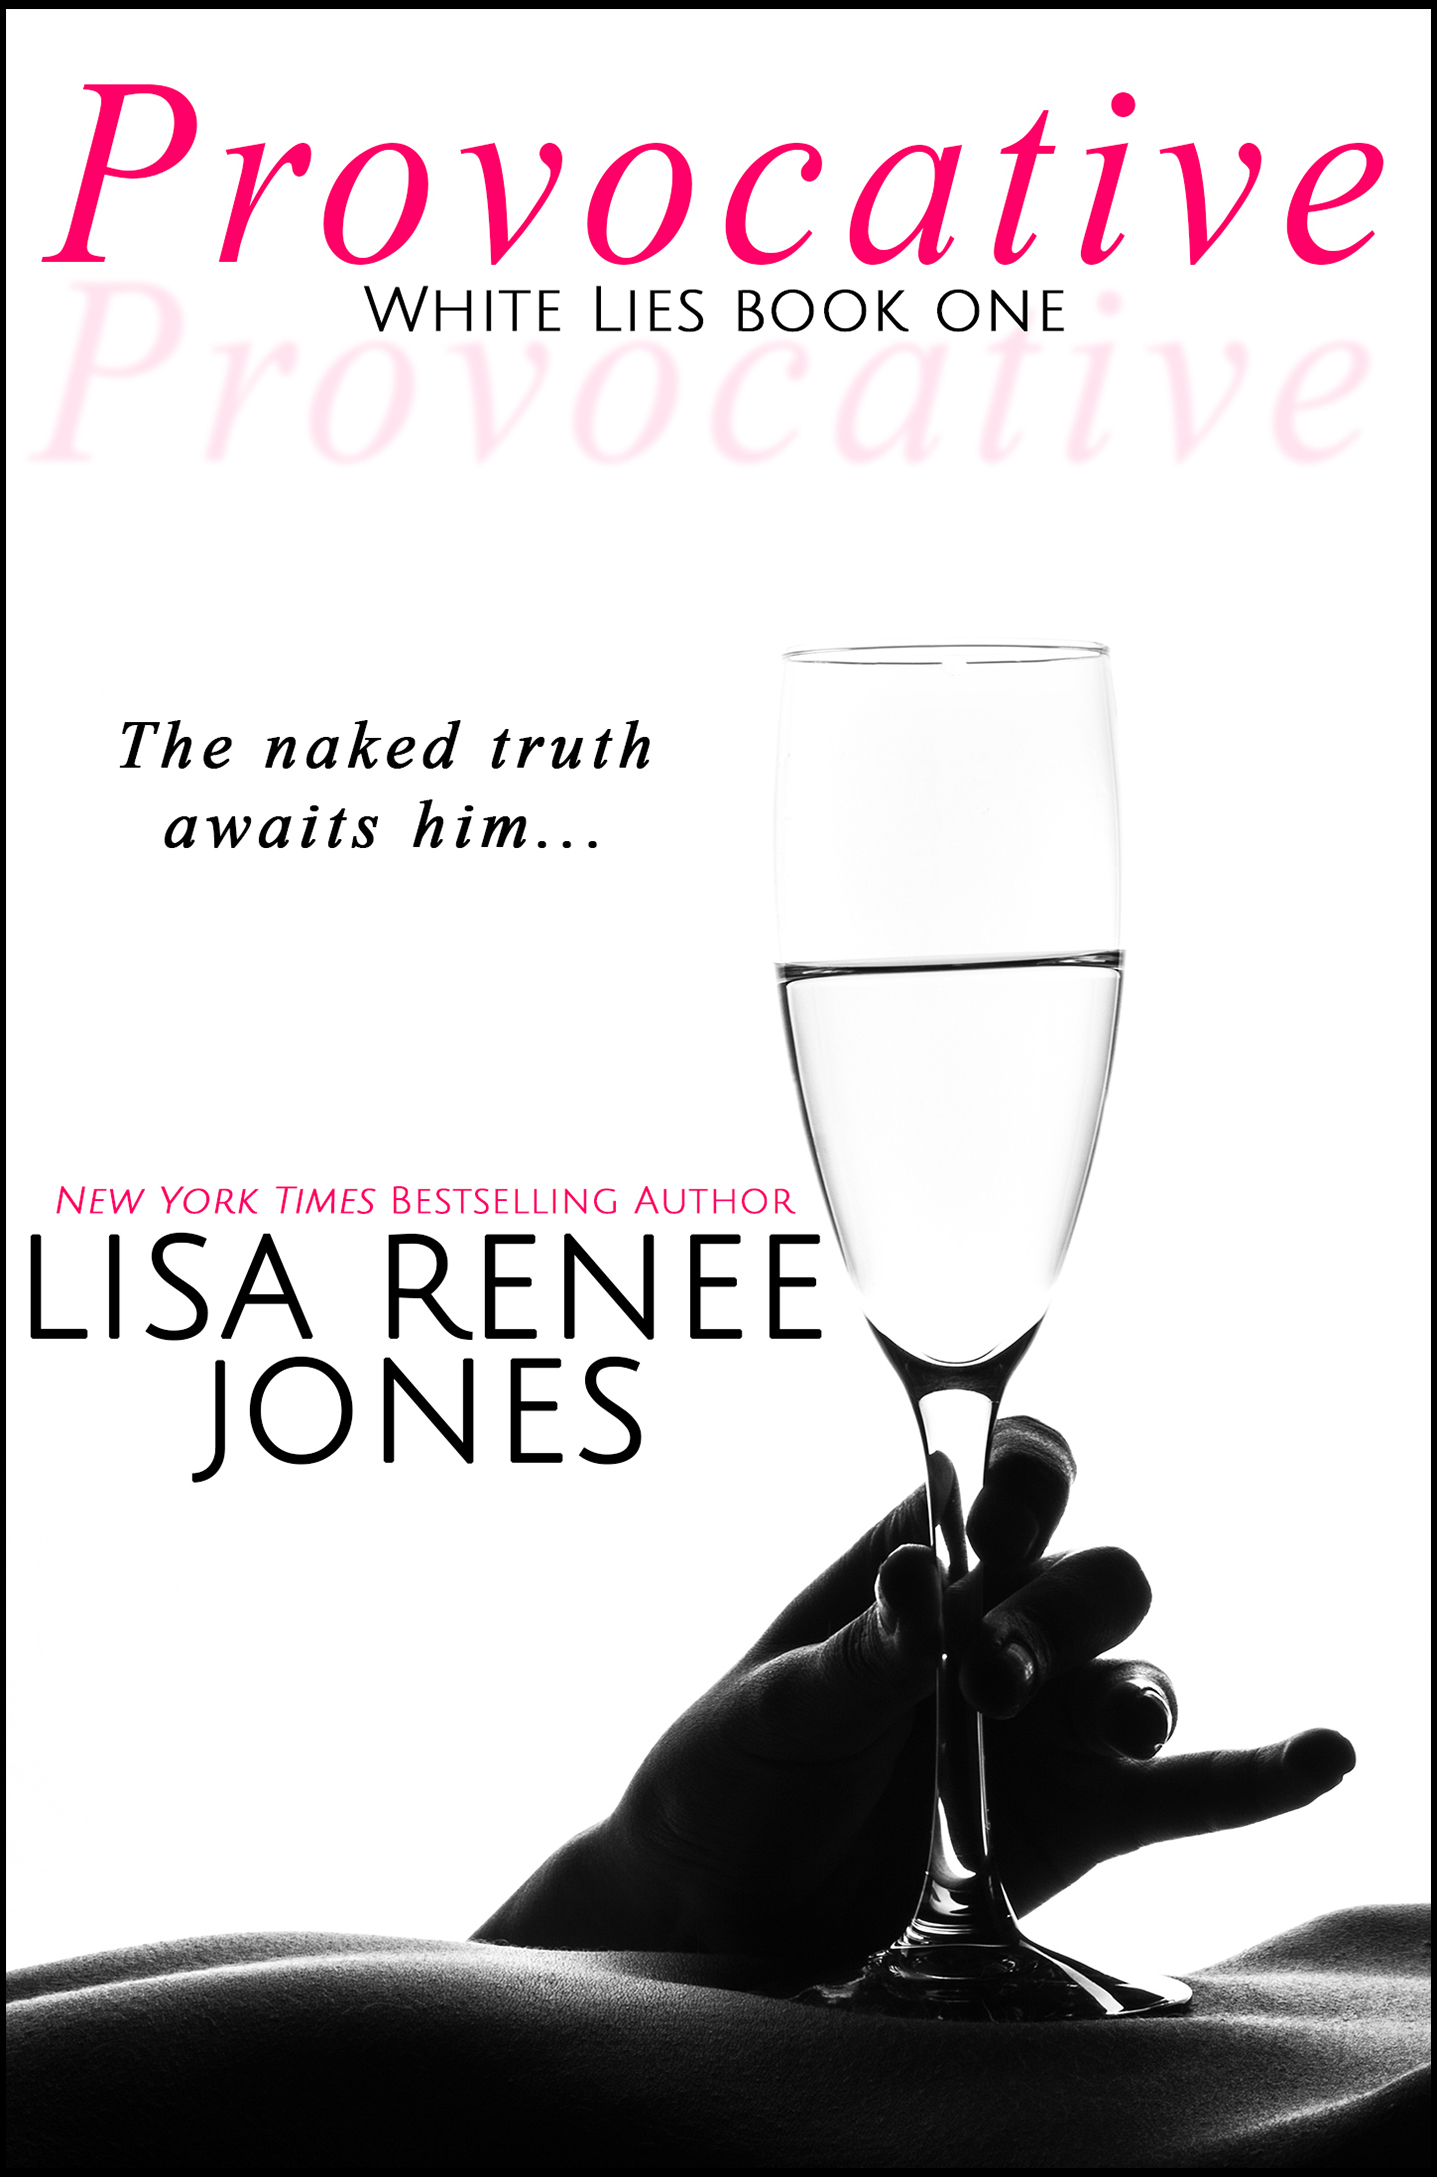 Cover and Chapter Reveal | Provocative by Lisa Renee Jones